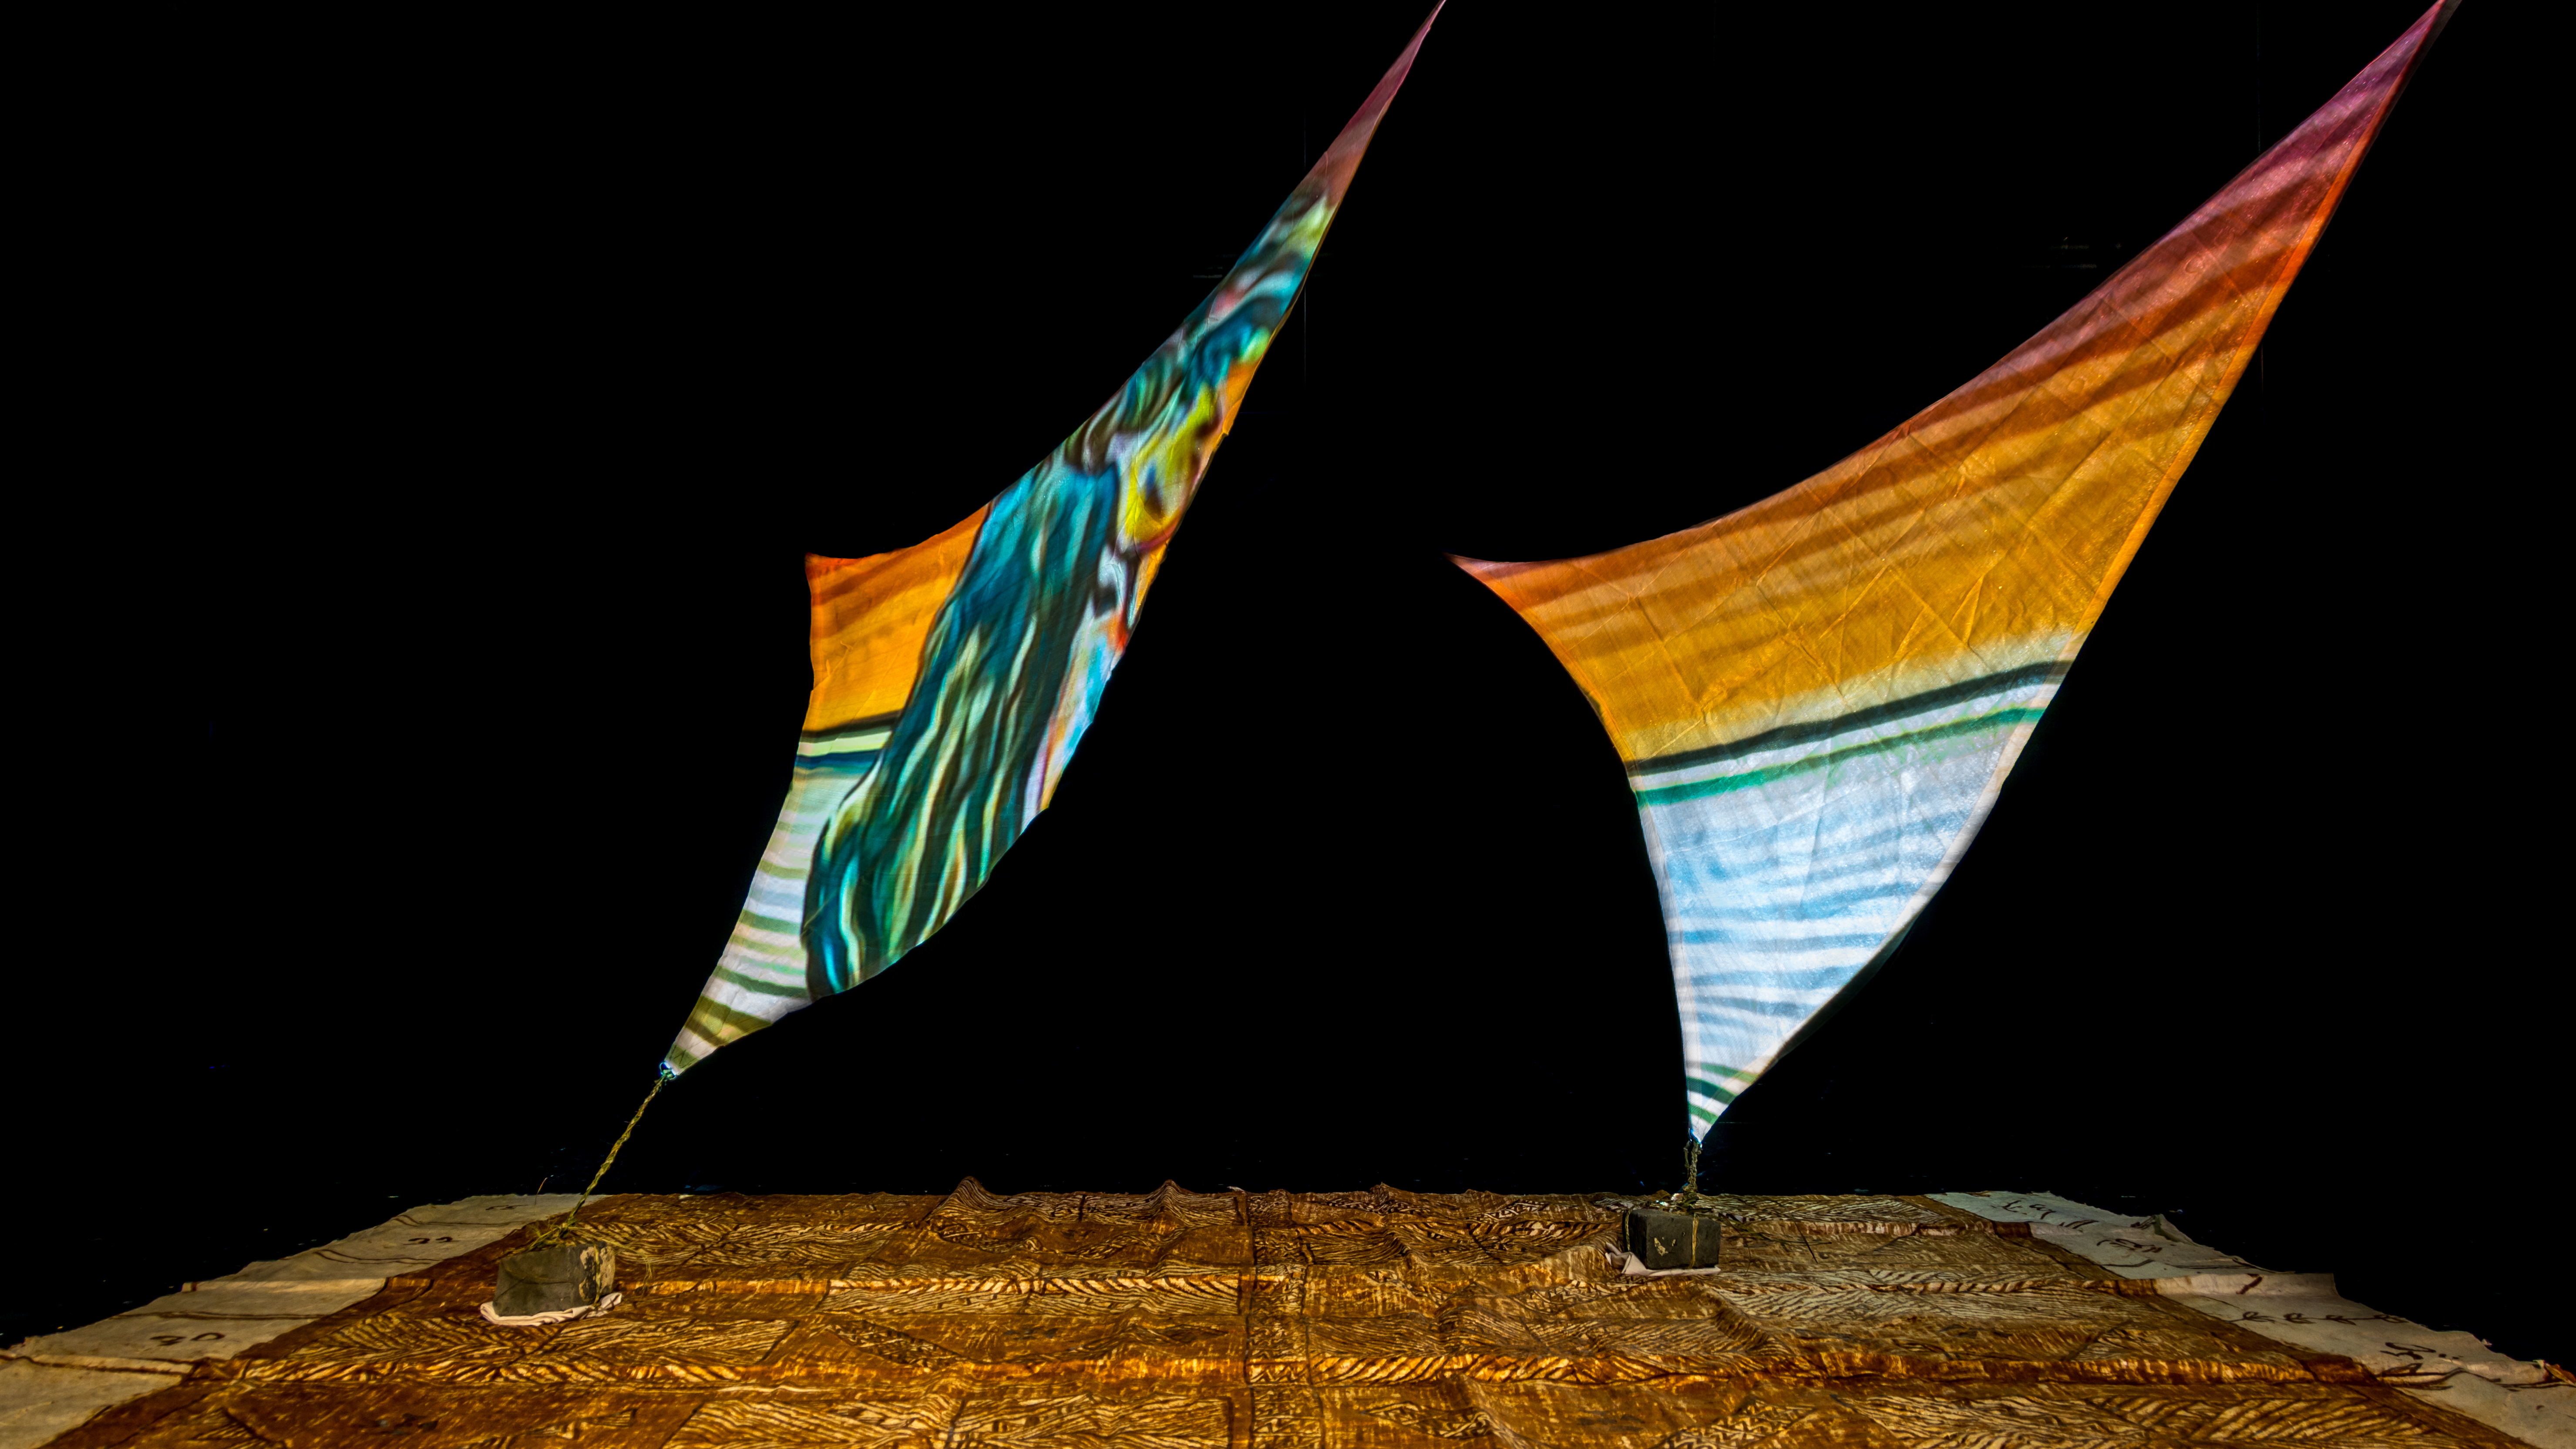 Projections onto rā sails installed with tapa underneath